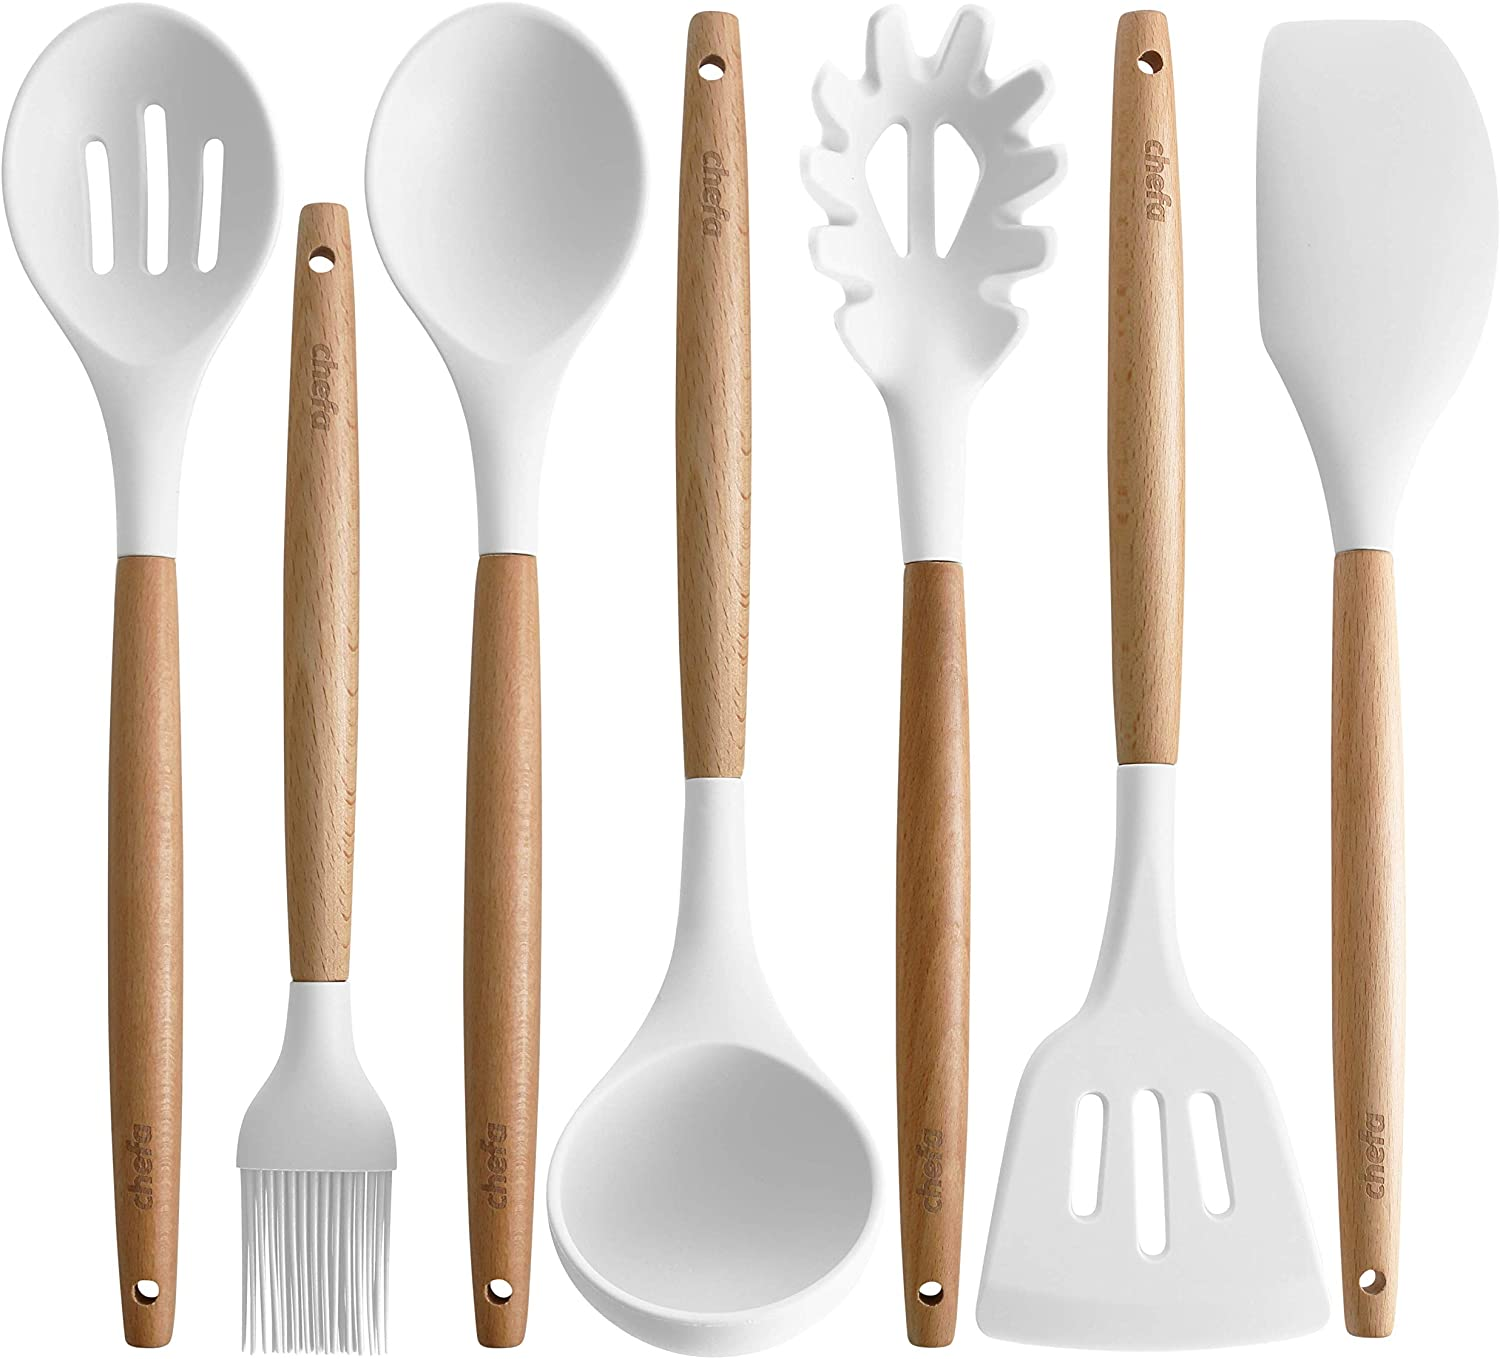 Silicone Cooking Utensils   Wooden Handle, Non-Stick Cookware Heat Resistant Kitchen Utensil Spatula, Slotted & Solid Spoon, Soup Ladle, Slotted Turner and Spaghetti Server